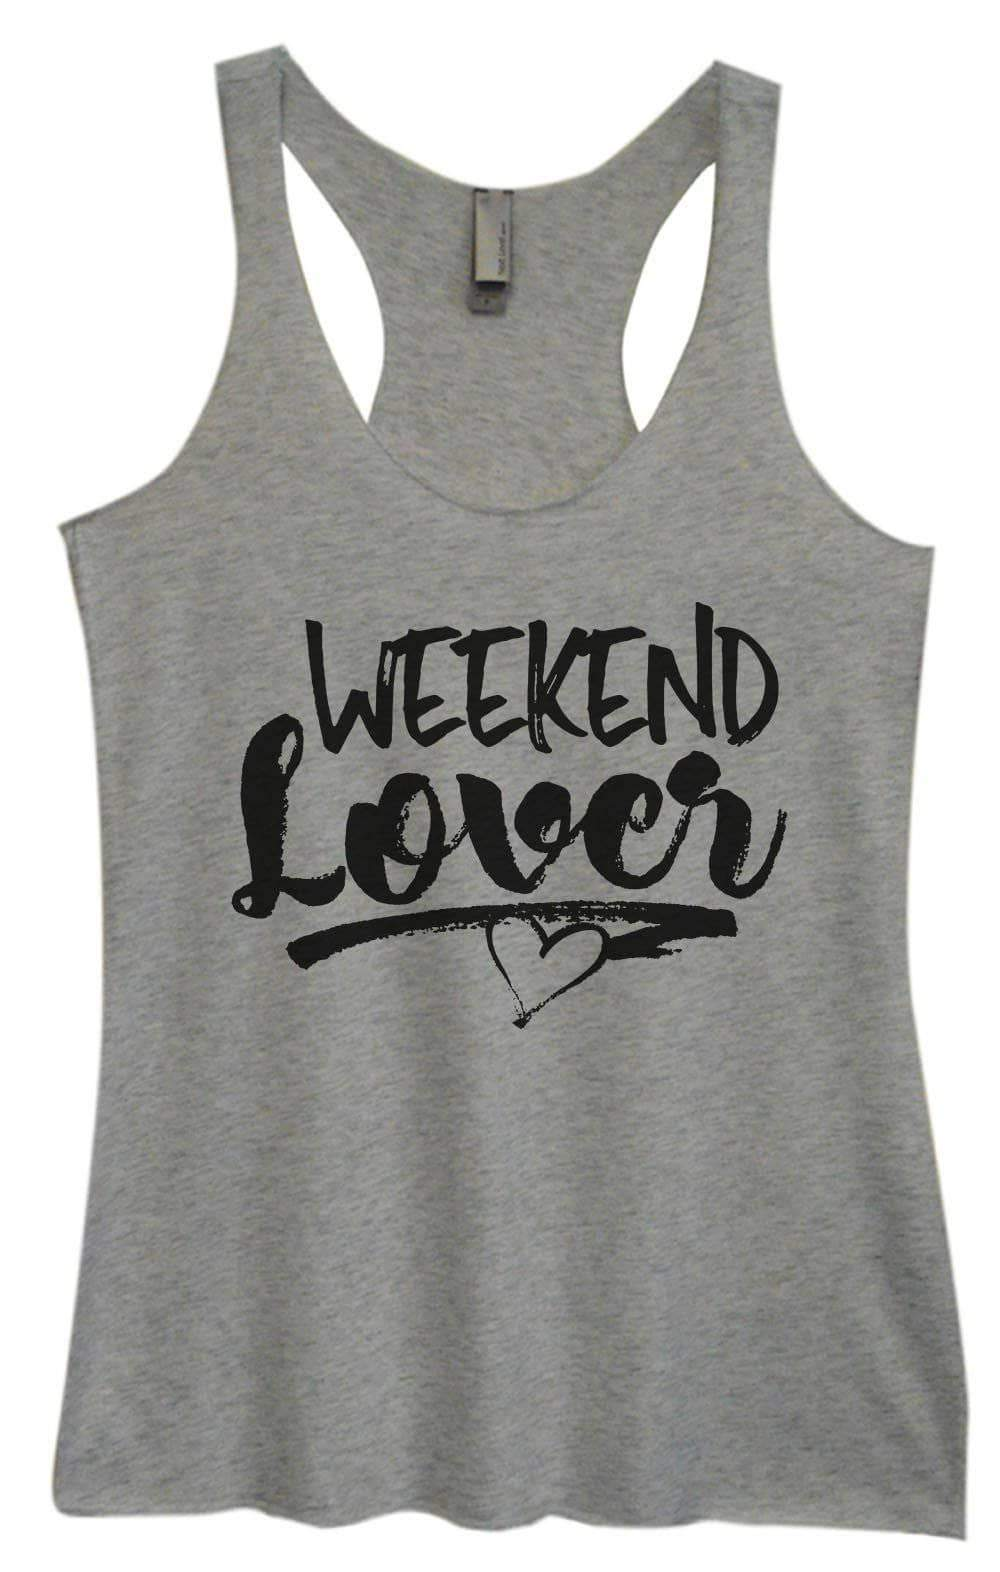 Womens Tri-Blend Tank Top - Weekend Lover Small Womens Tank Tops Vintage Grey